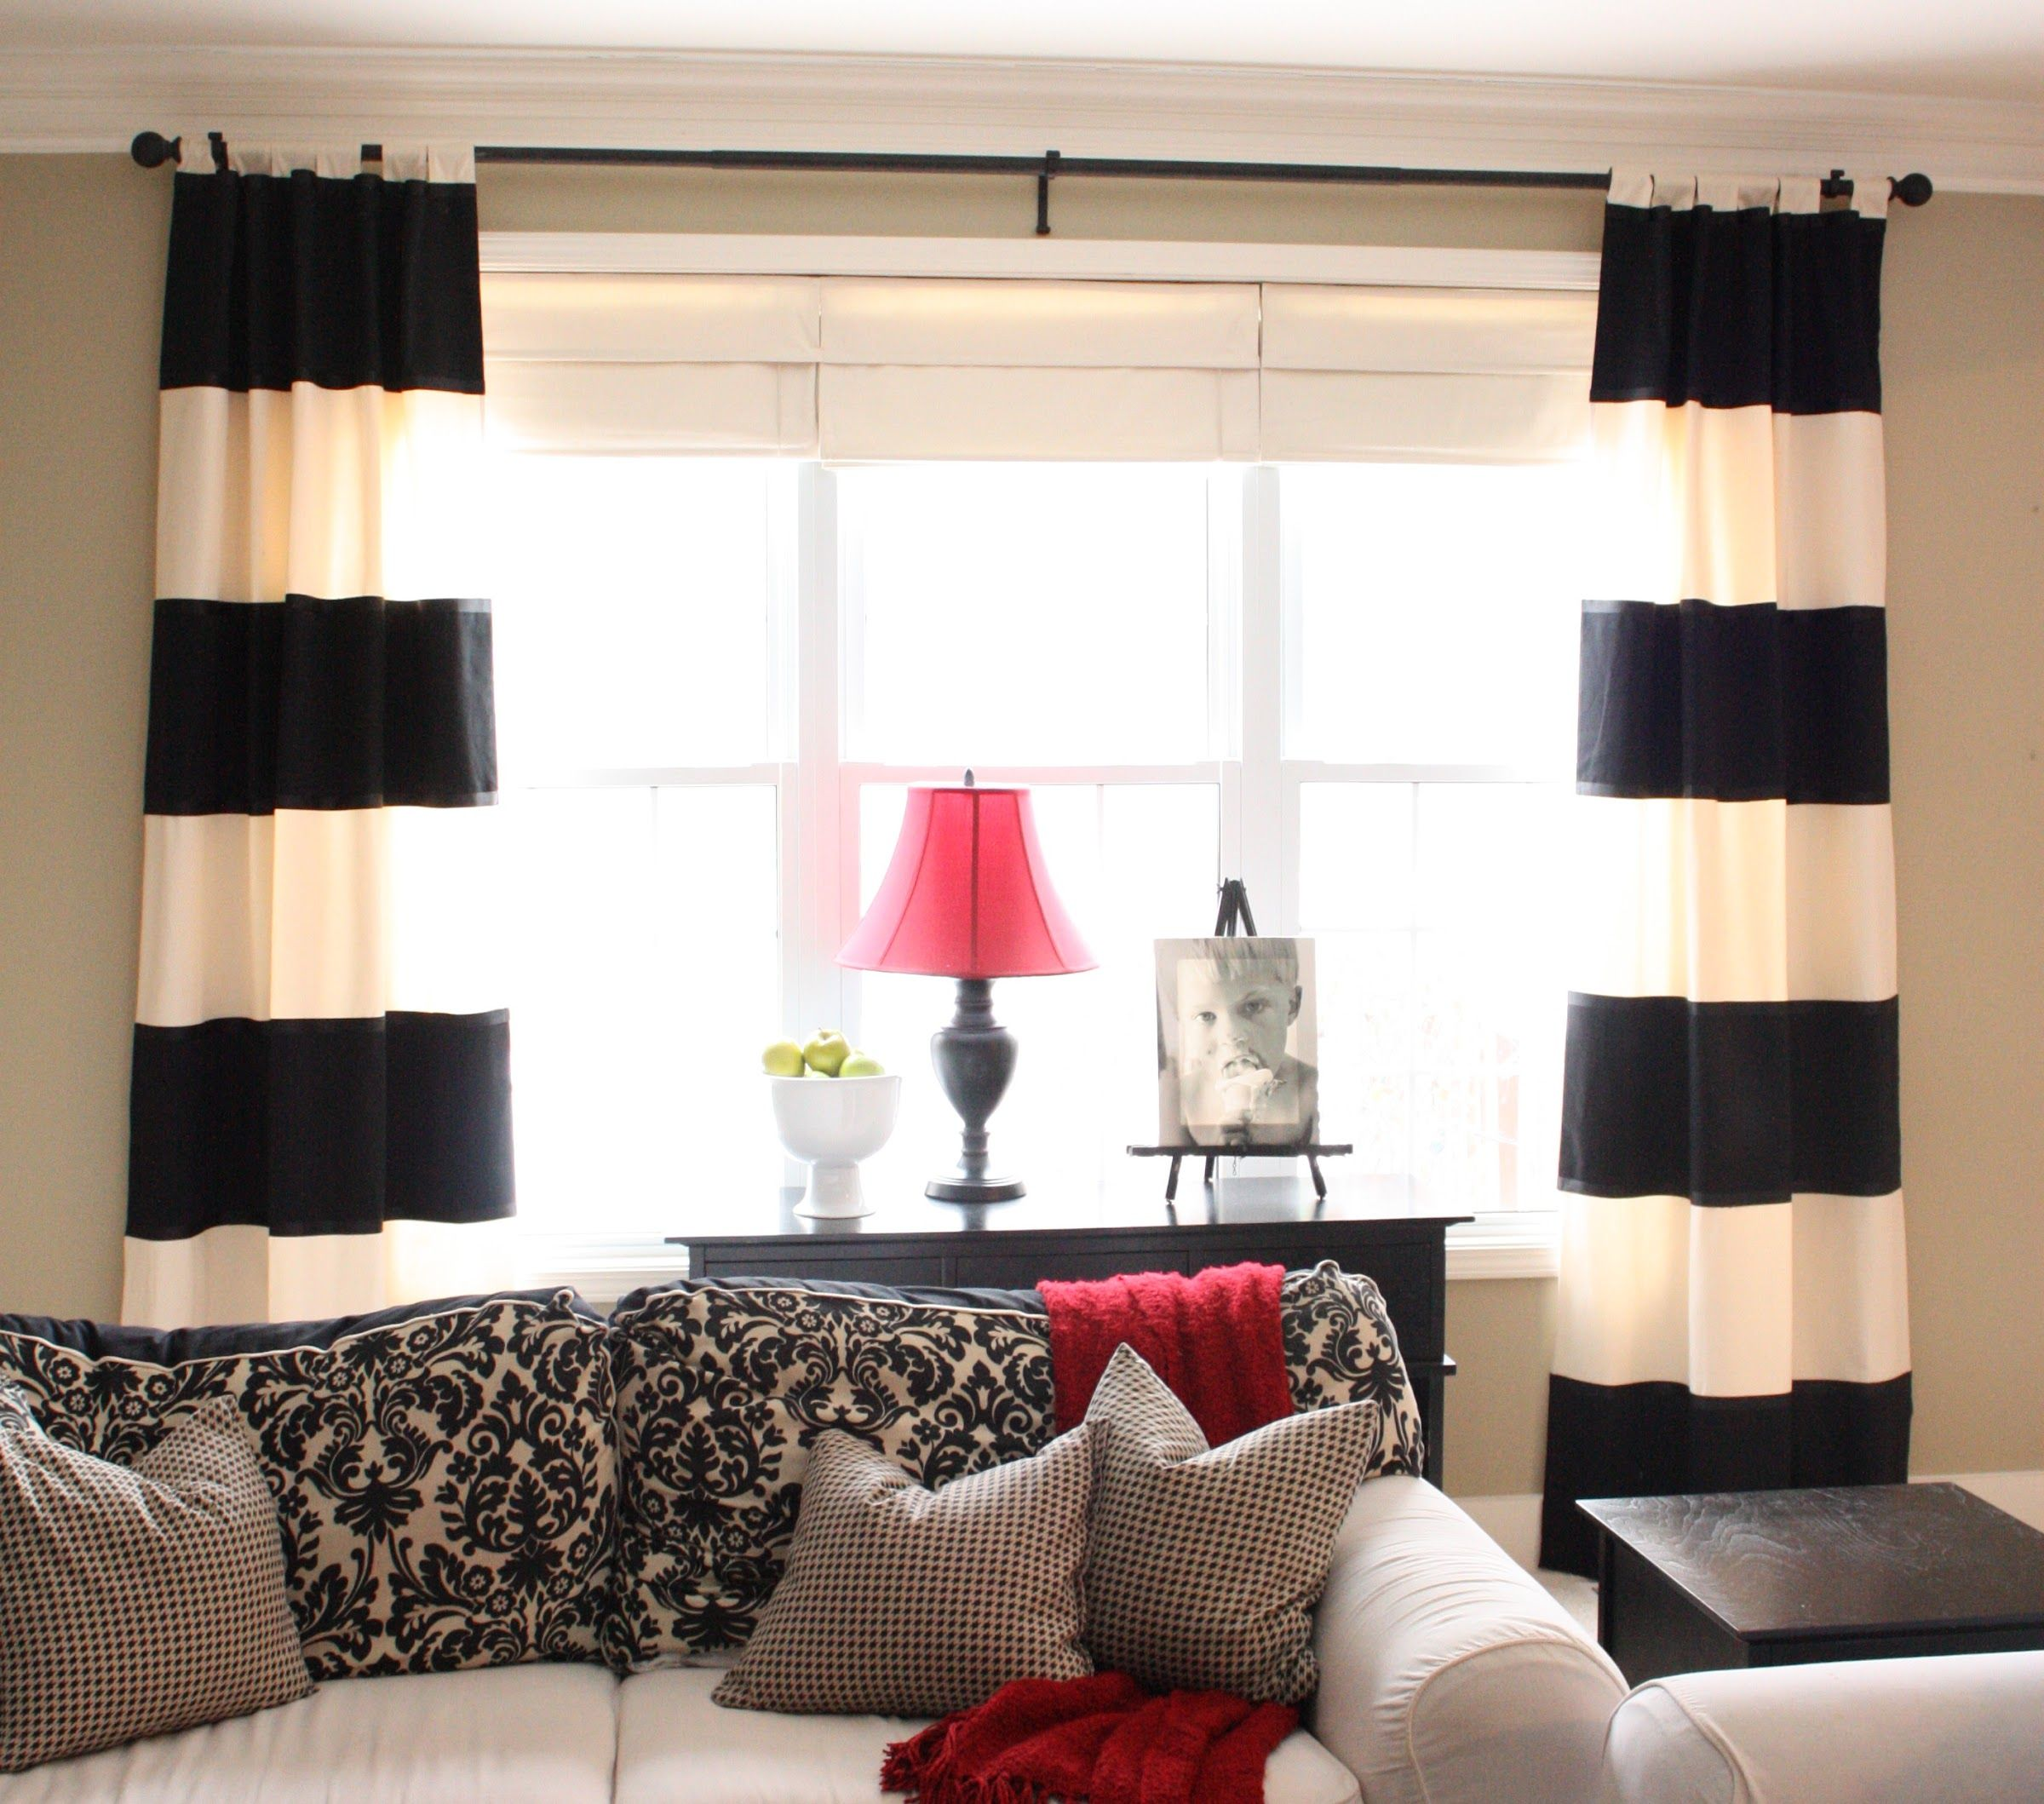 Red and white striped curtain panels - The Yellow Cape Cod Bold Striped Diy Drapes I M Really Liking This Bold Striped Curtain Look Hhhmmmm I Need A Sewing Machine